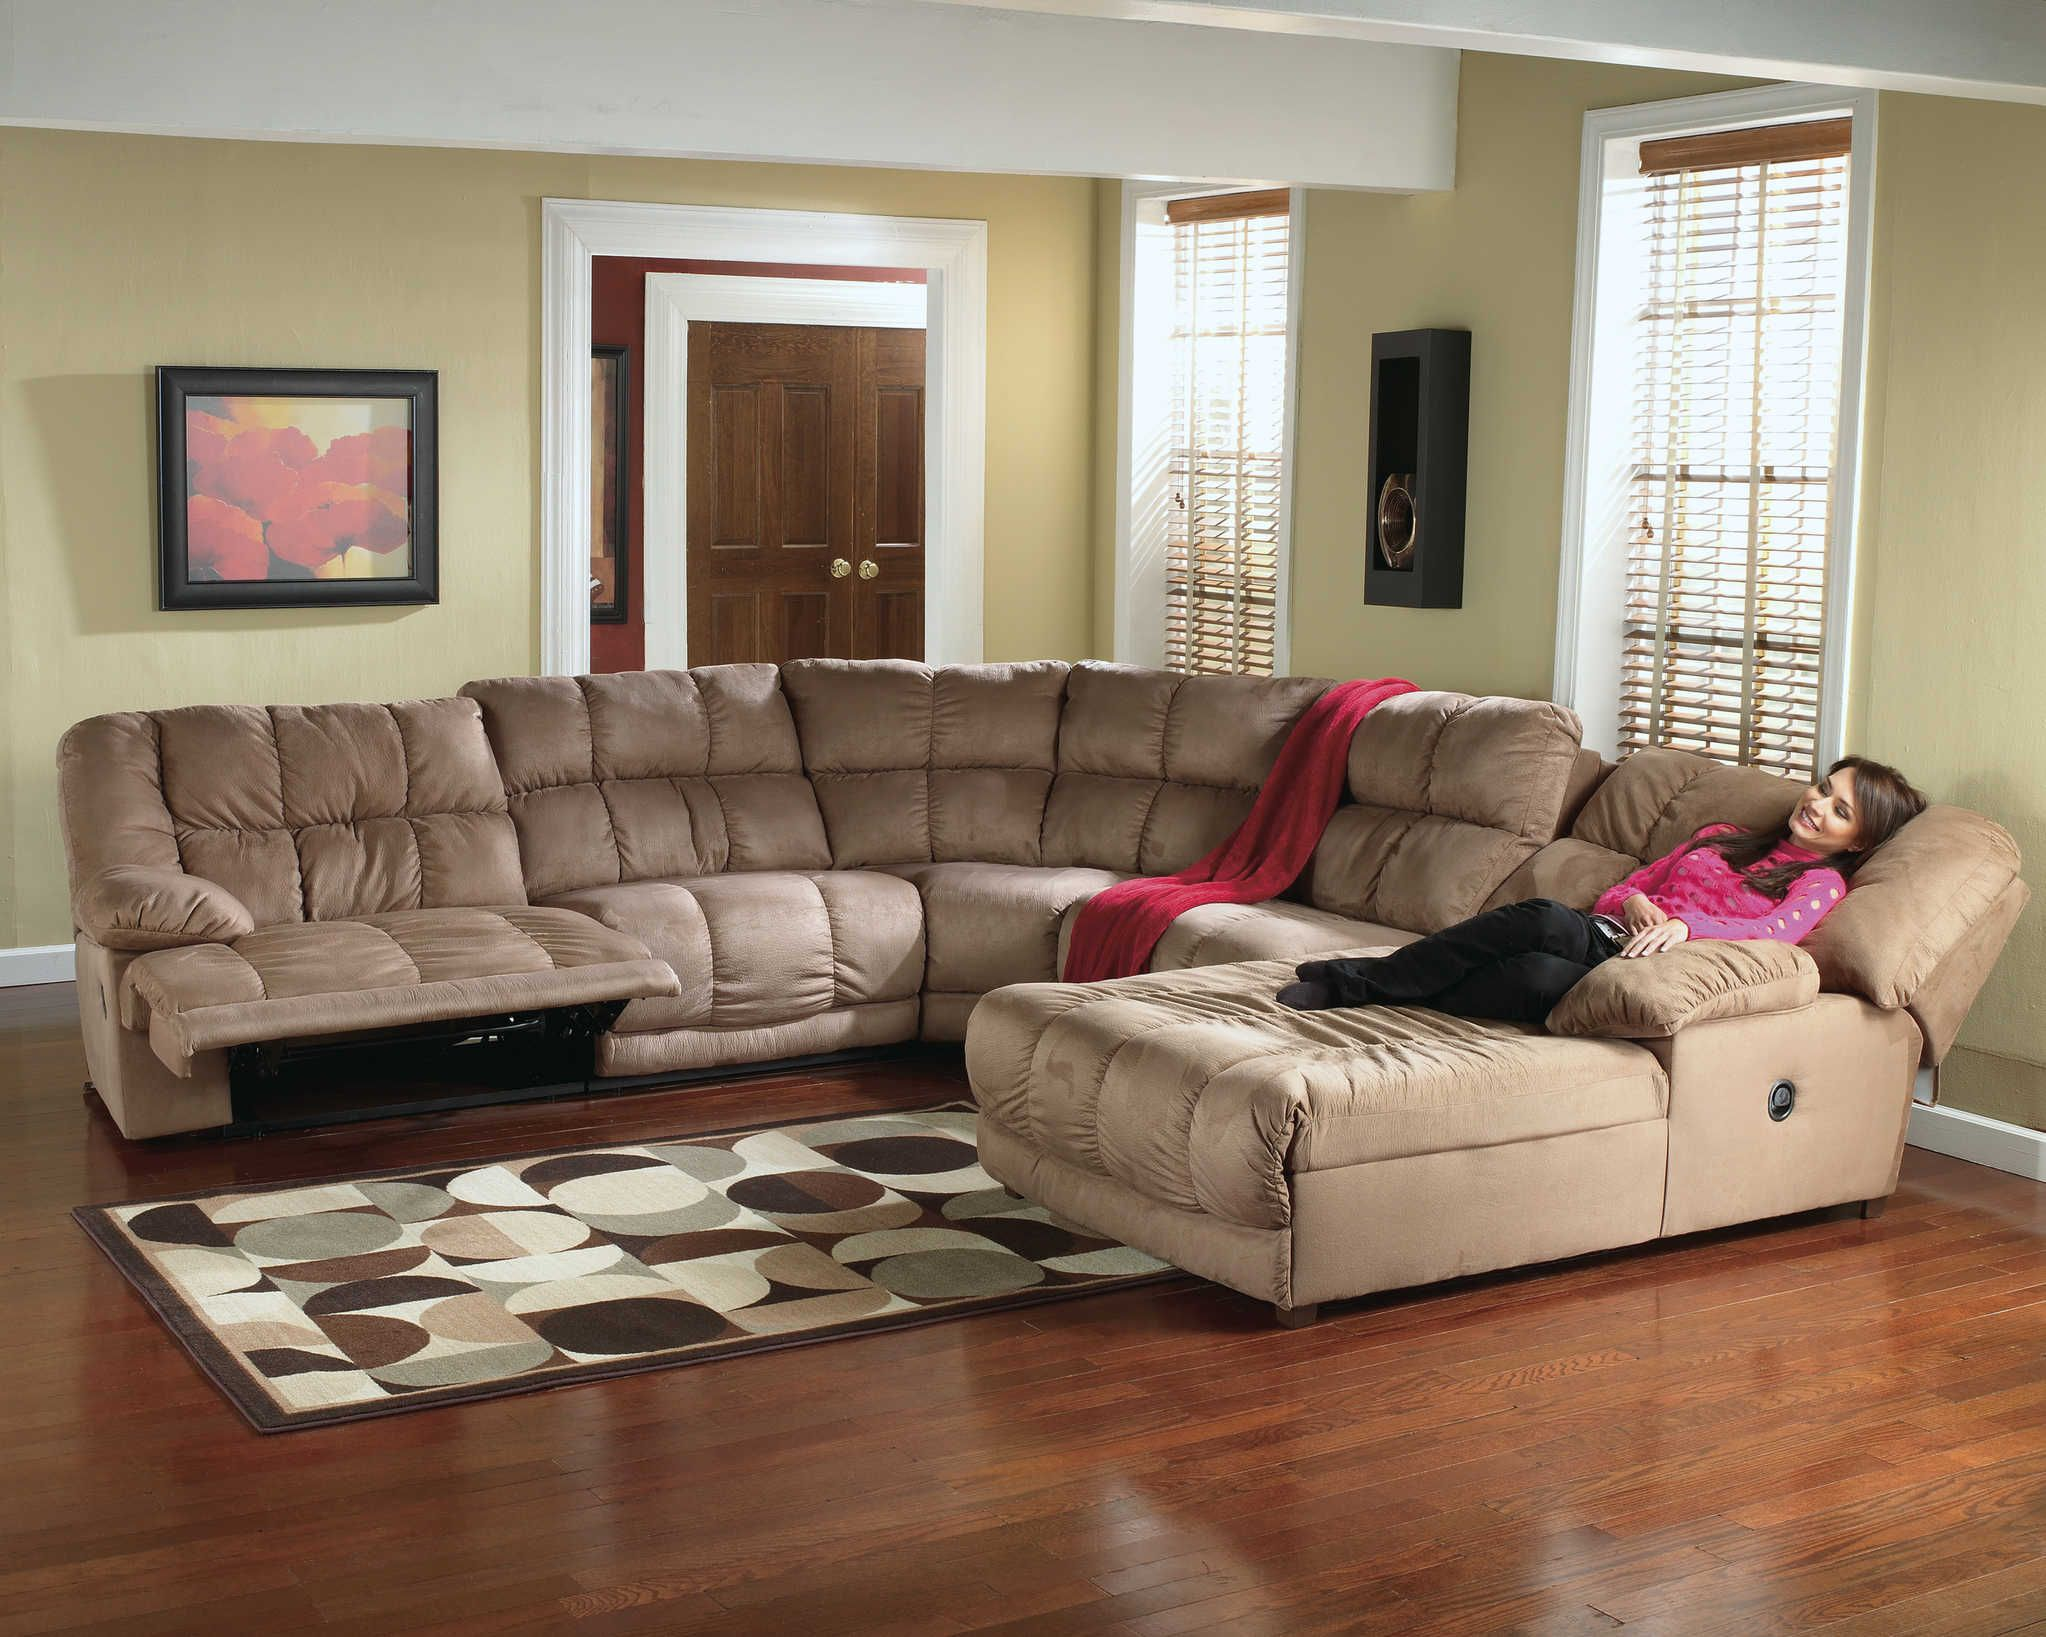 Microfiber Recliner Sectional Sectional Sofa Recliner Chaise 260 Living